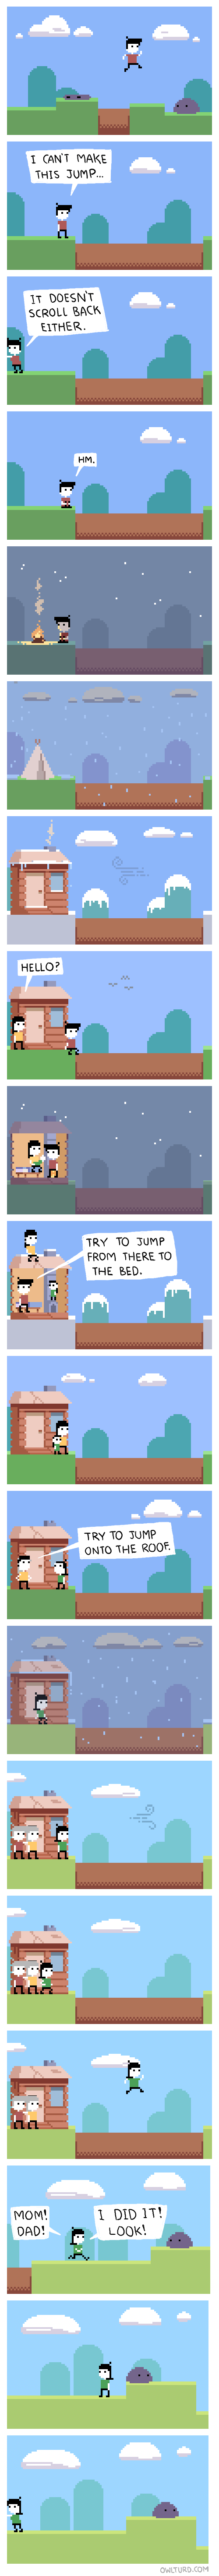 gaming video games scrolling Sad platformers web comics - 8248036608